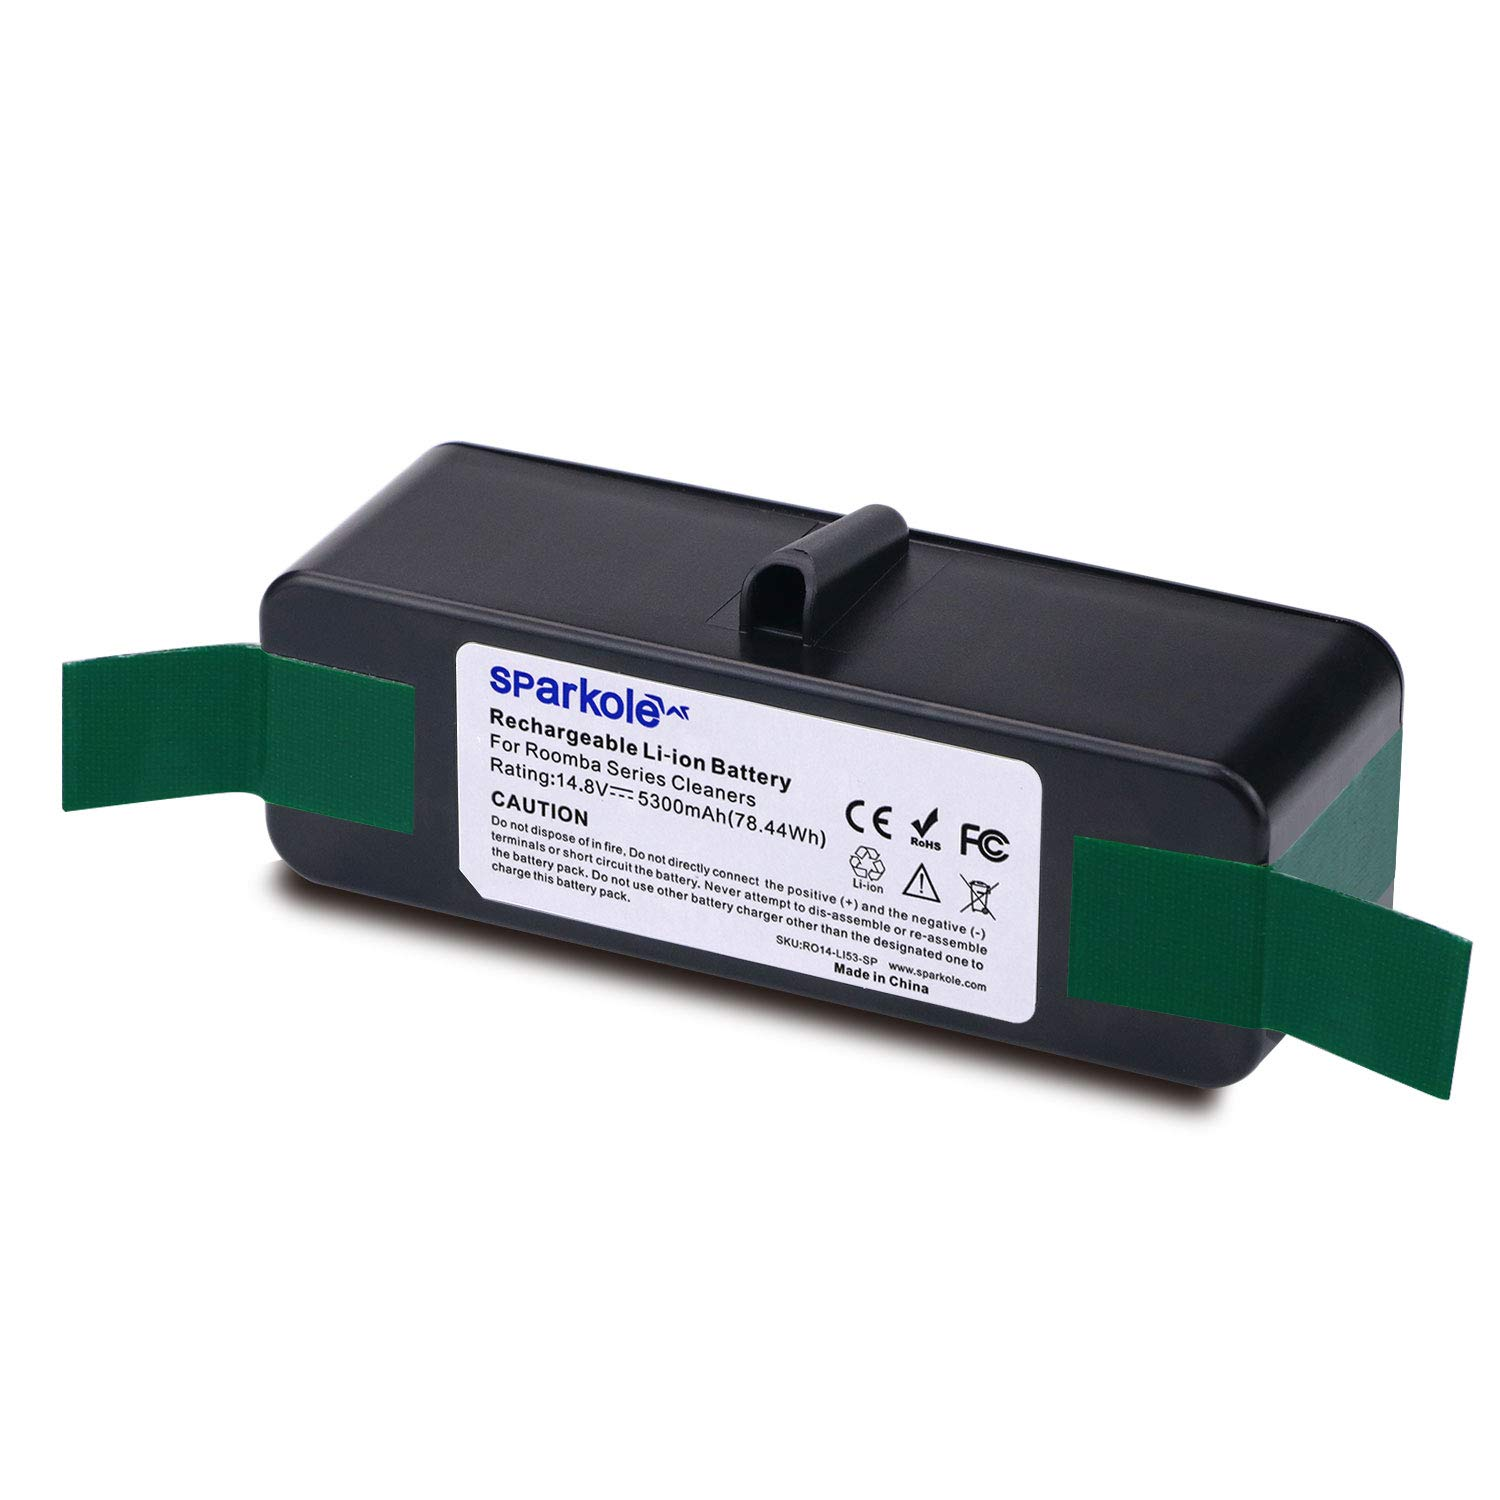 SPARKOLE 5300mAh Extended Life Lithium Ion Replacement Battery Compatible with iRobot Roomba 500,600,700,800 Series 500 510 530 531 581 585 595 600 620 630 650 655 675 700 760 770 780 800 870 880 890 by SPARKOLE